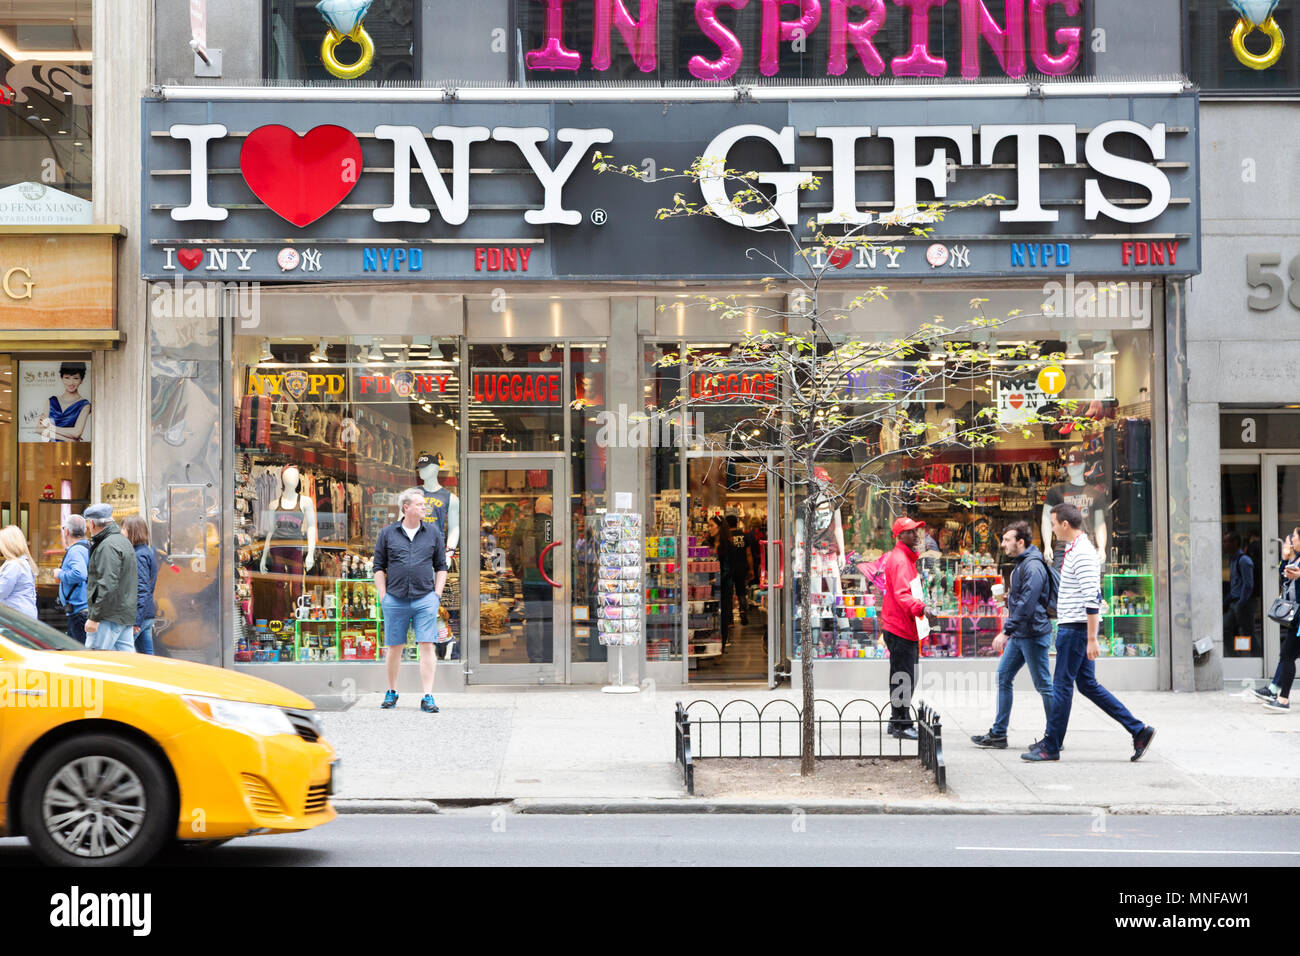 I Love New York Gifts gift shop, Fifth Avenue, New York city, USA - Stock Image